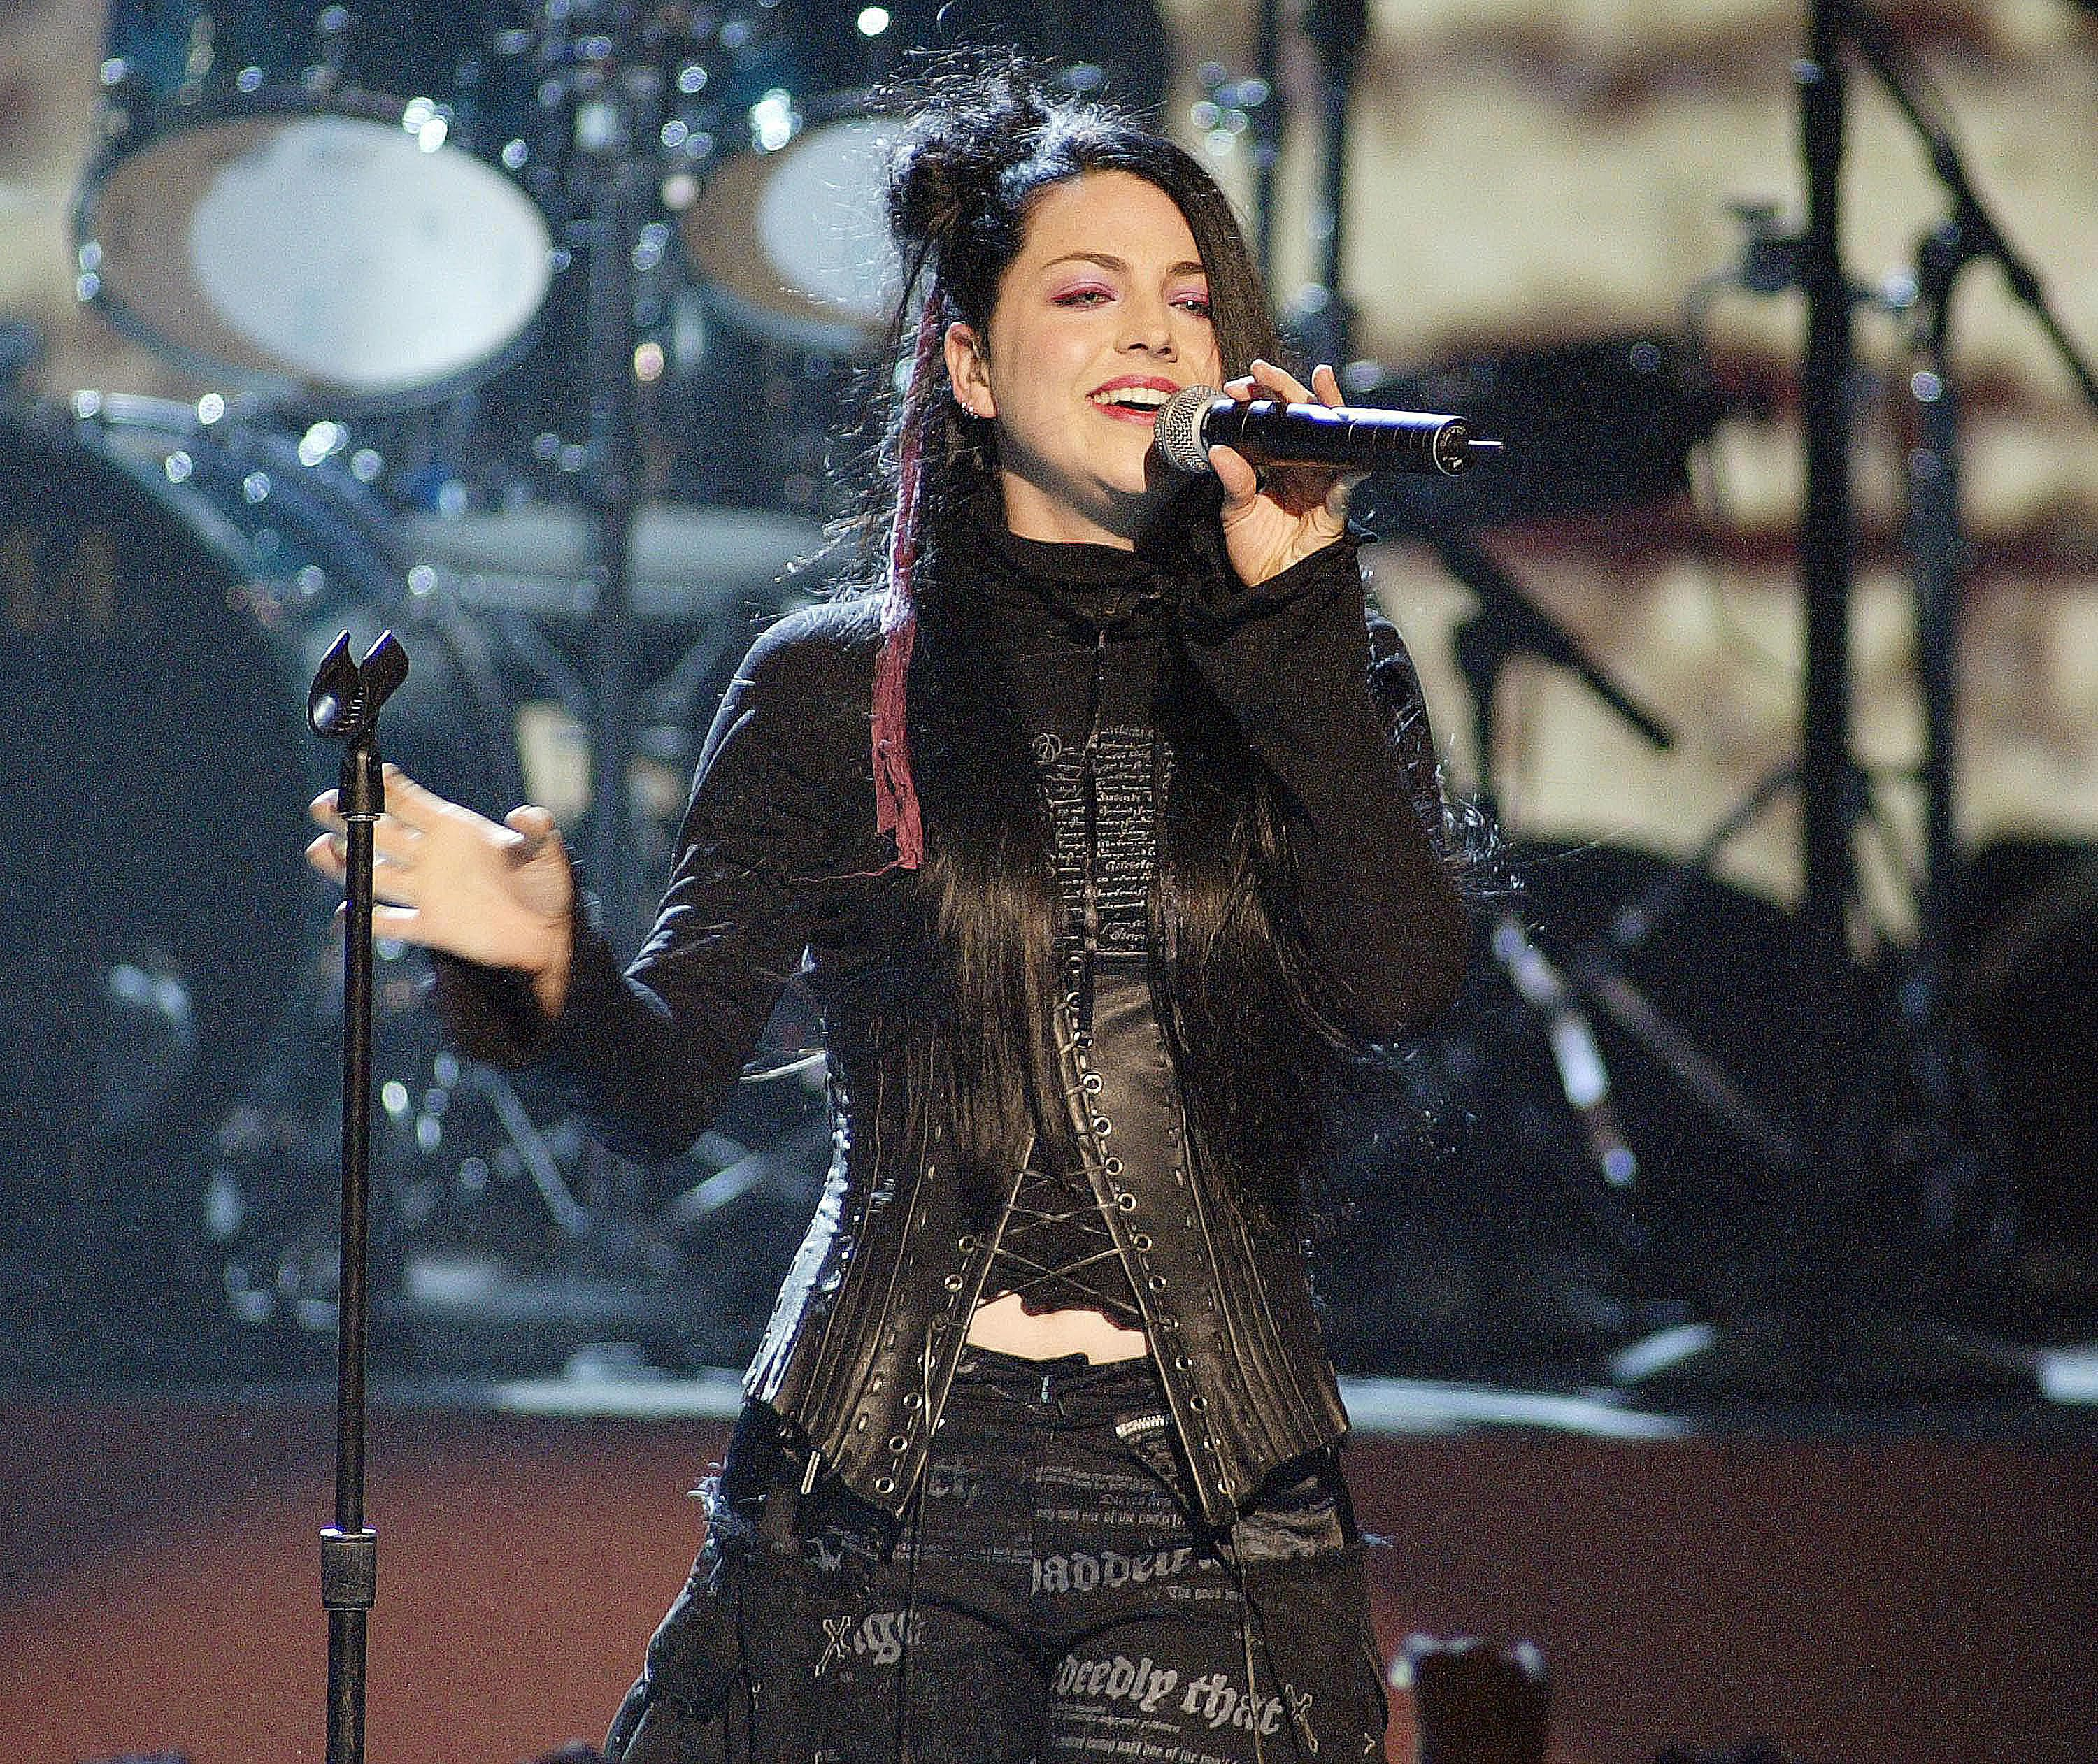 Lady Rock Singers: Top 10 Frontwomen In Today's Rock Music